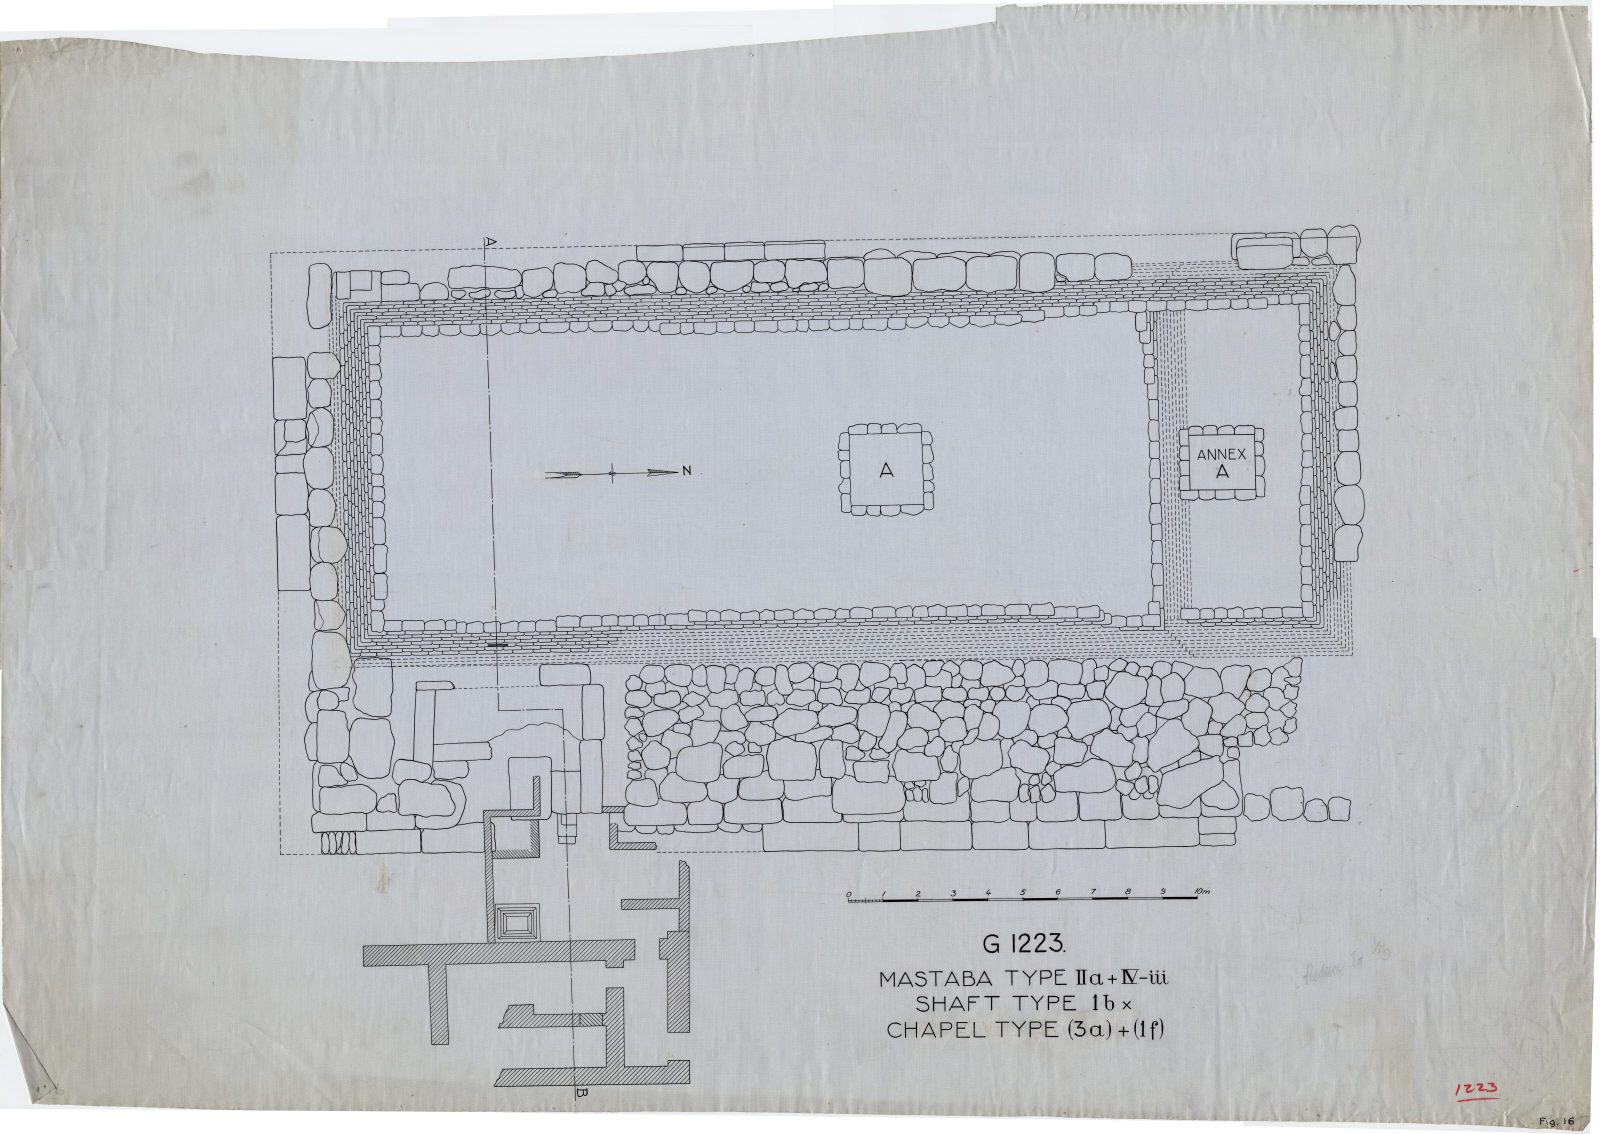 Maps and plans: Plan of G 1223 and G 1223-Annex